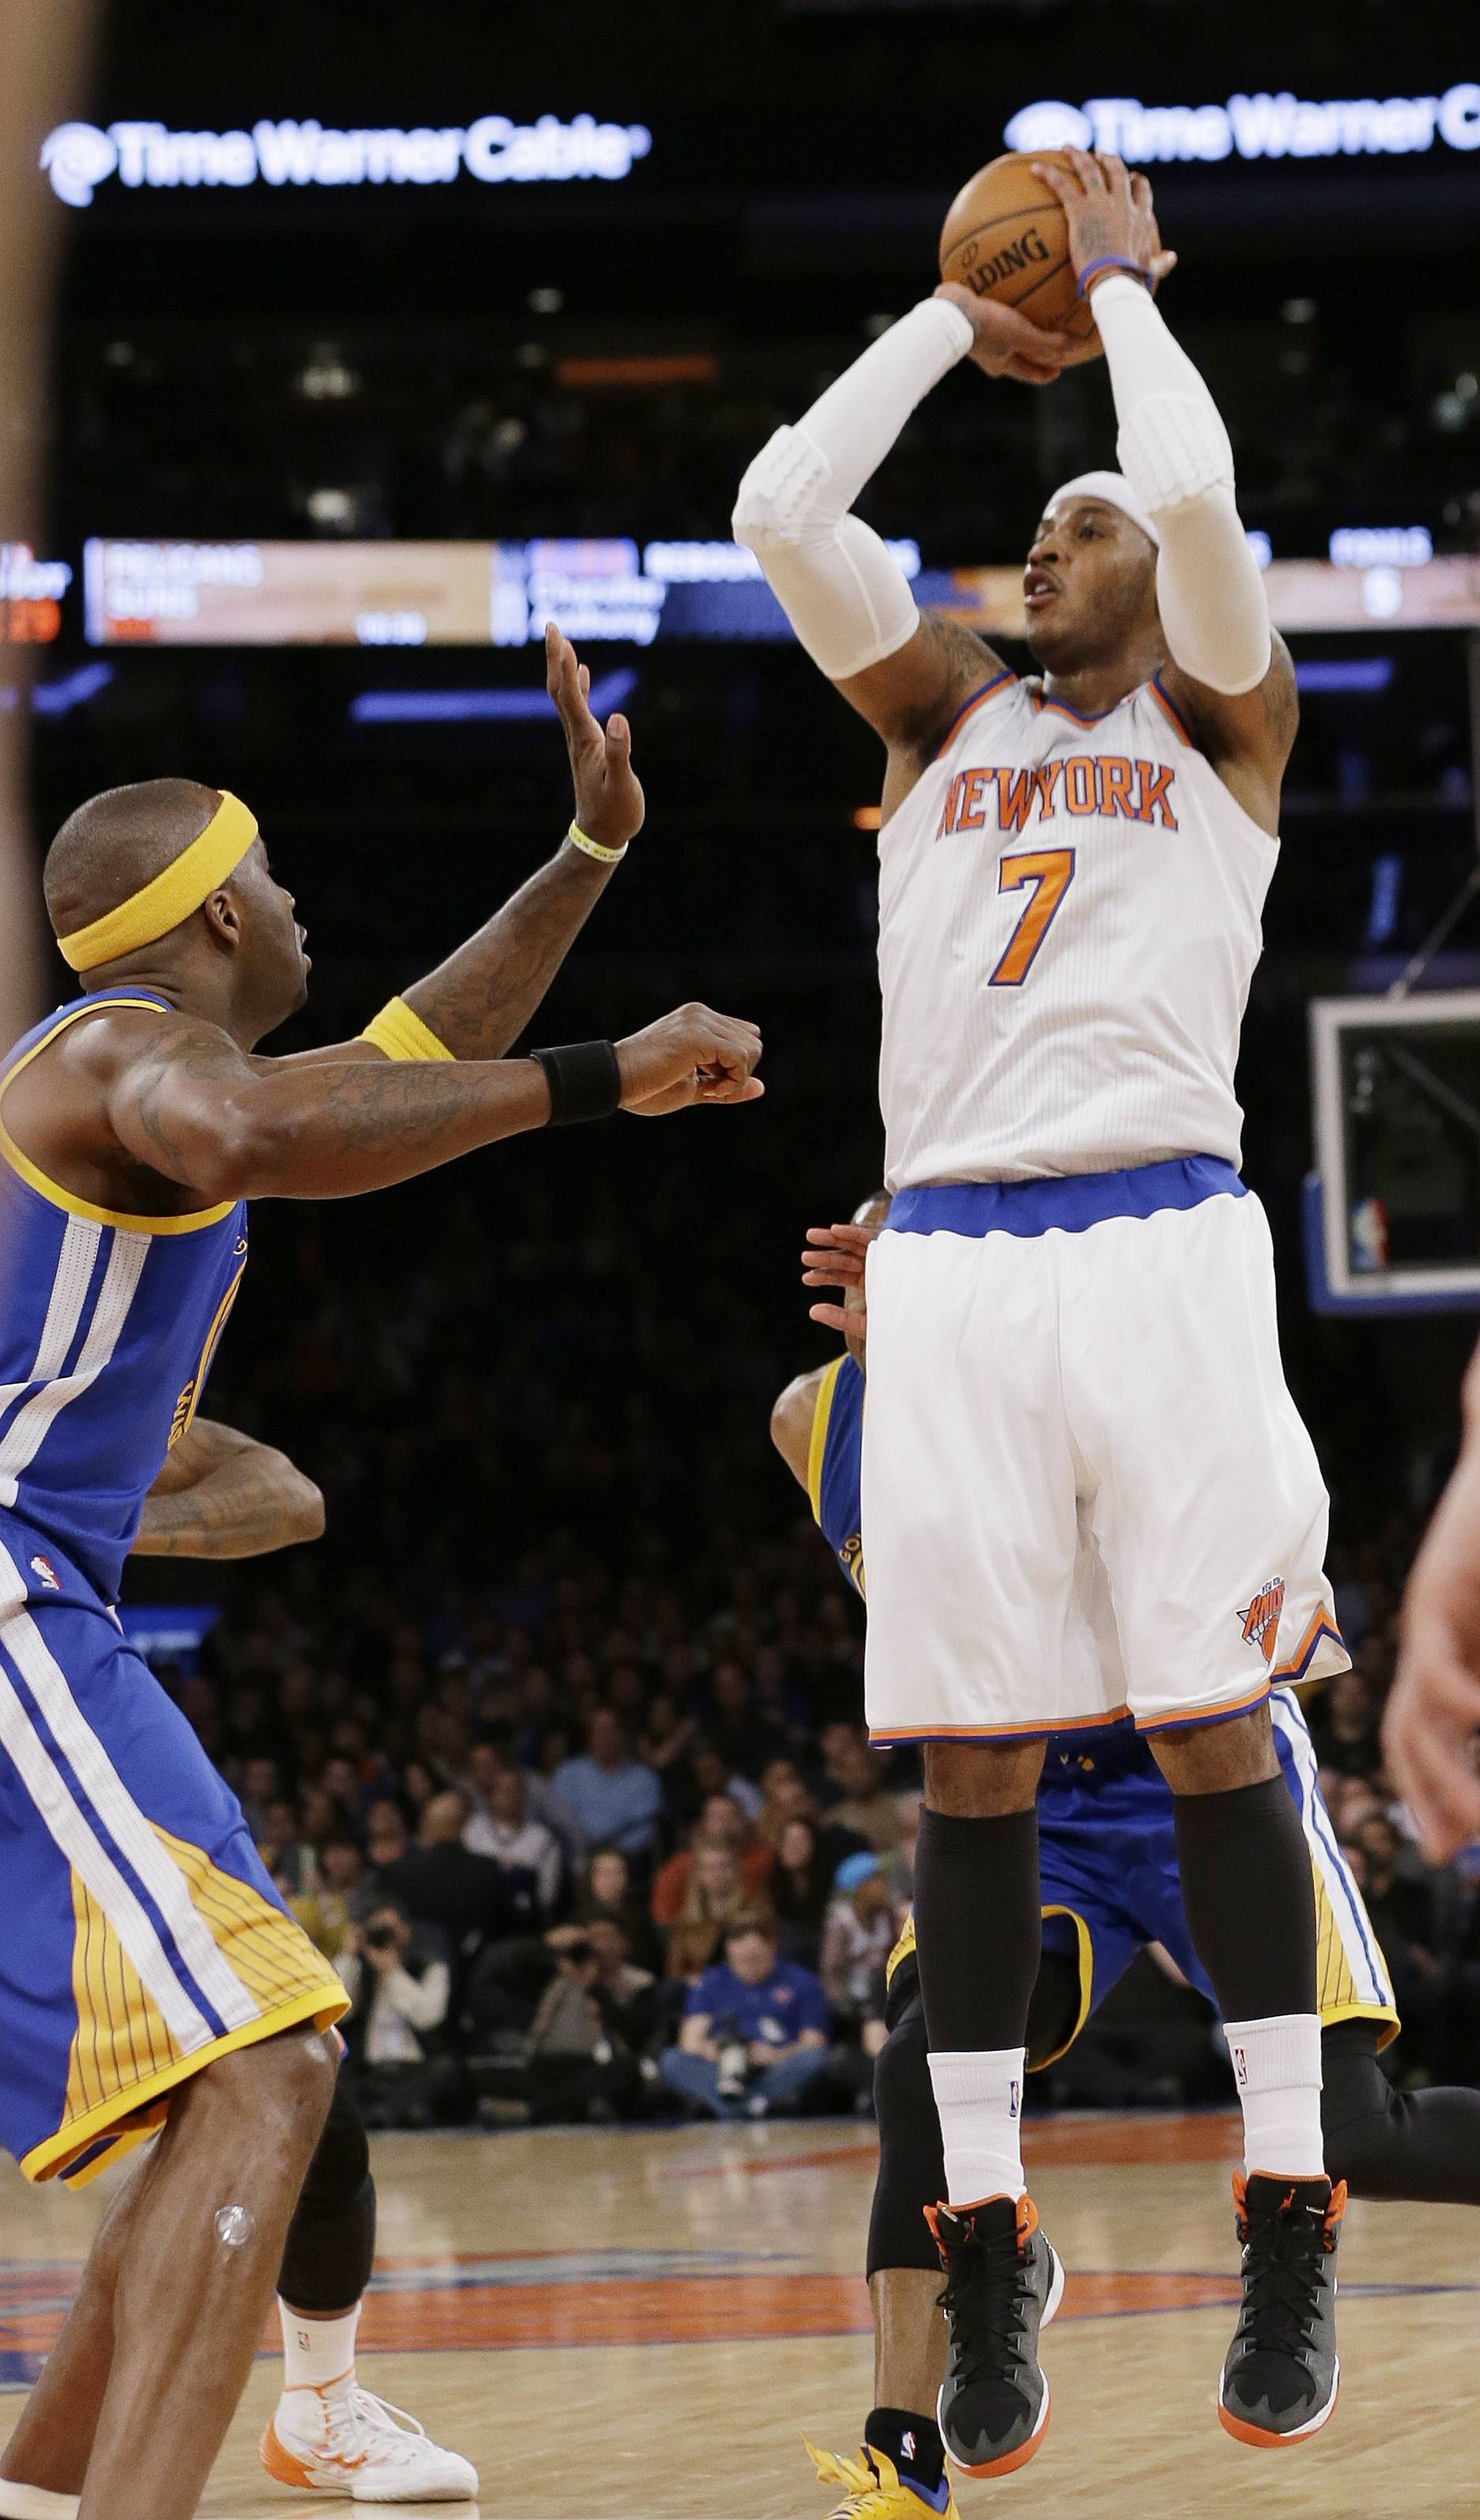 The Knicks' Carmelo Anthony, right, has been on a tear, averaging 35 points and 9.4 rebounds while shooting 48 percent over the last five games. But the Knicks lost every time.